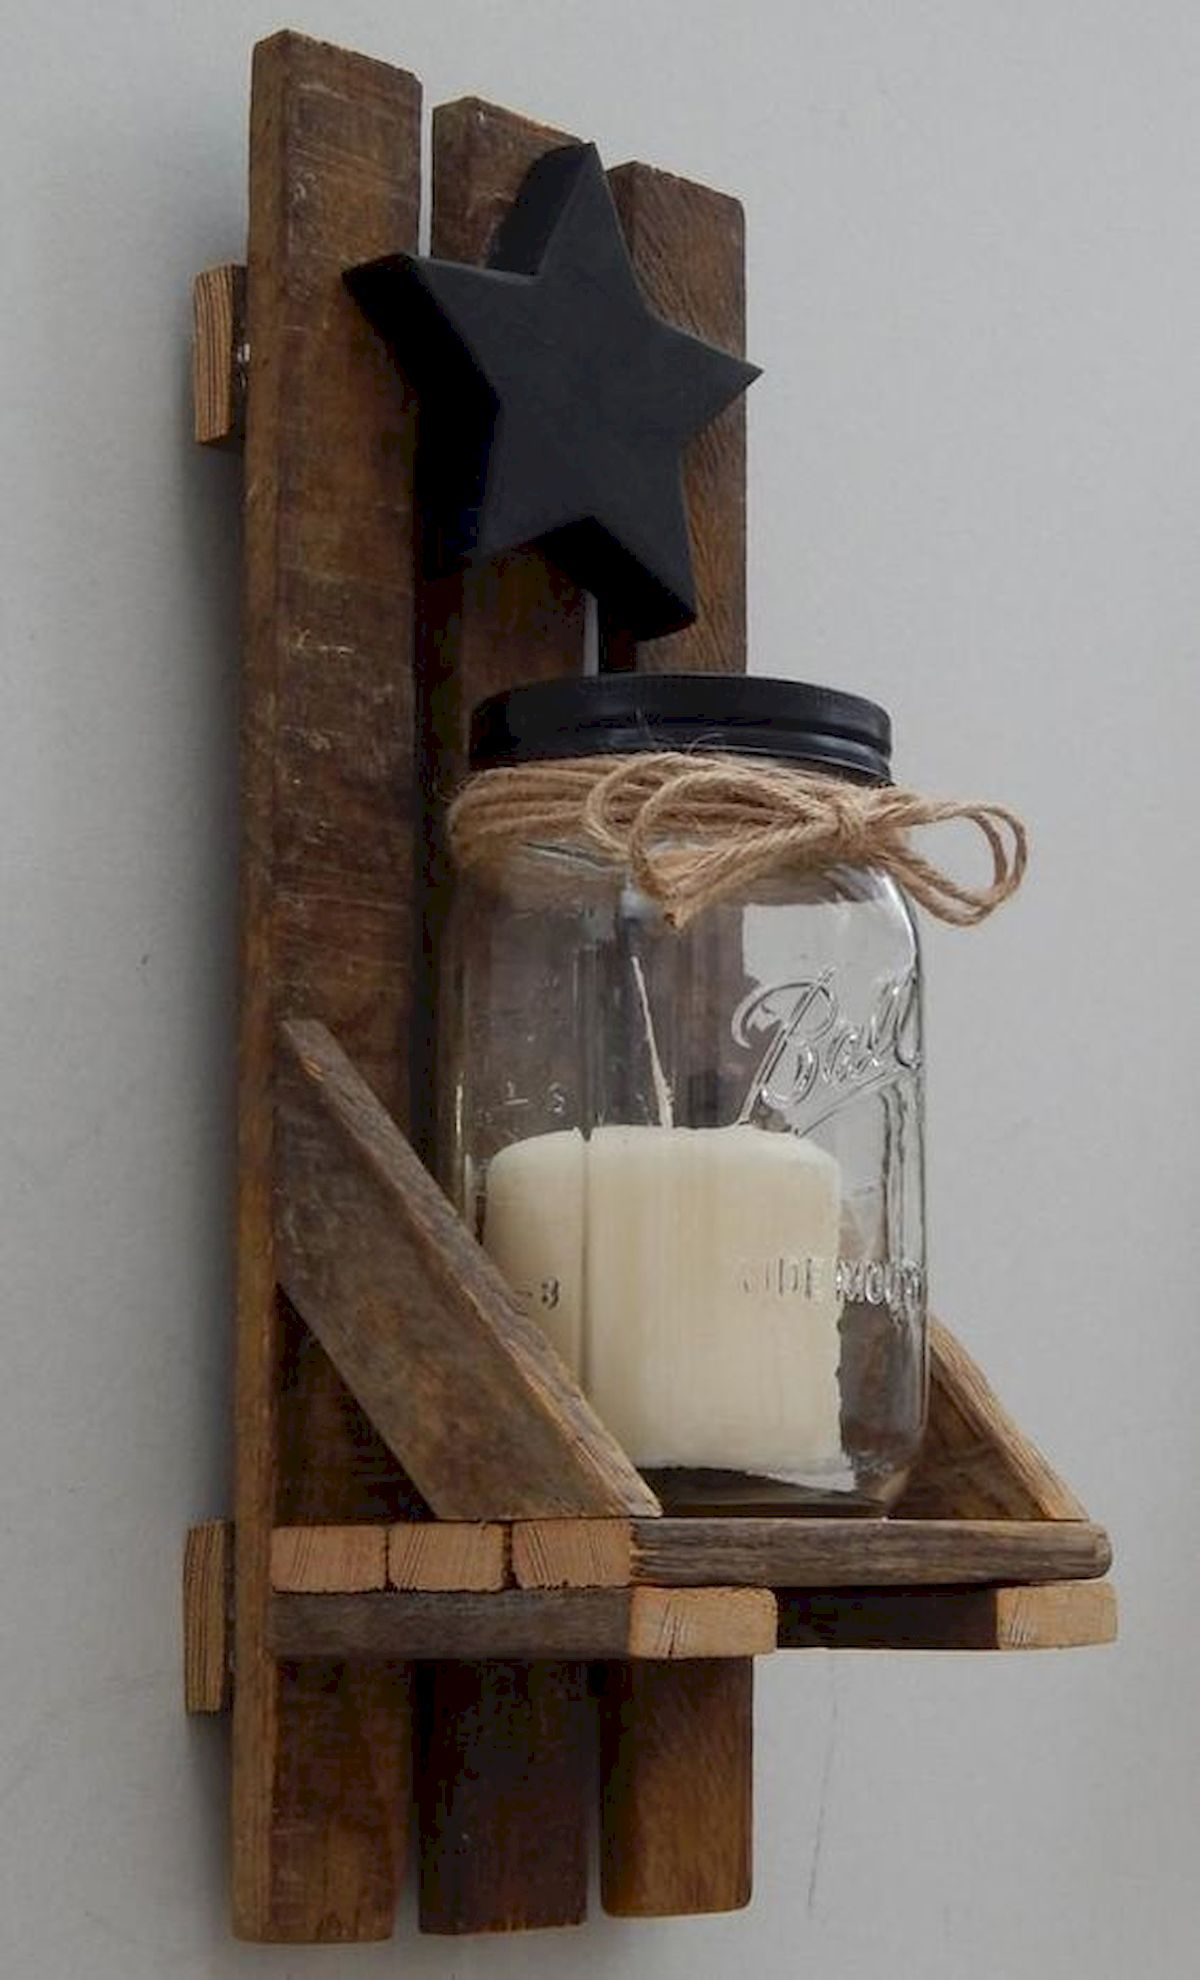 60 Easy DIY Wood Projects for Beginners (12)